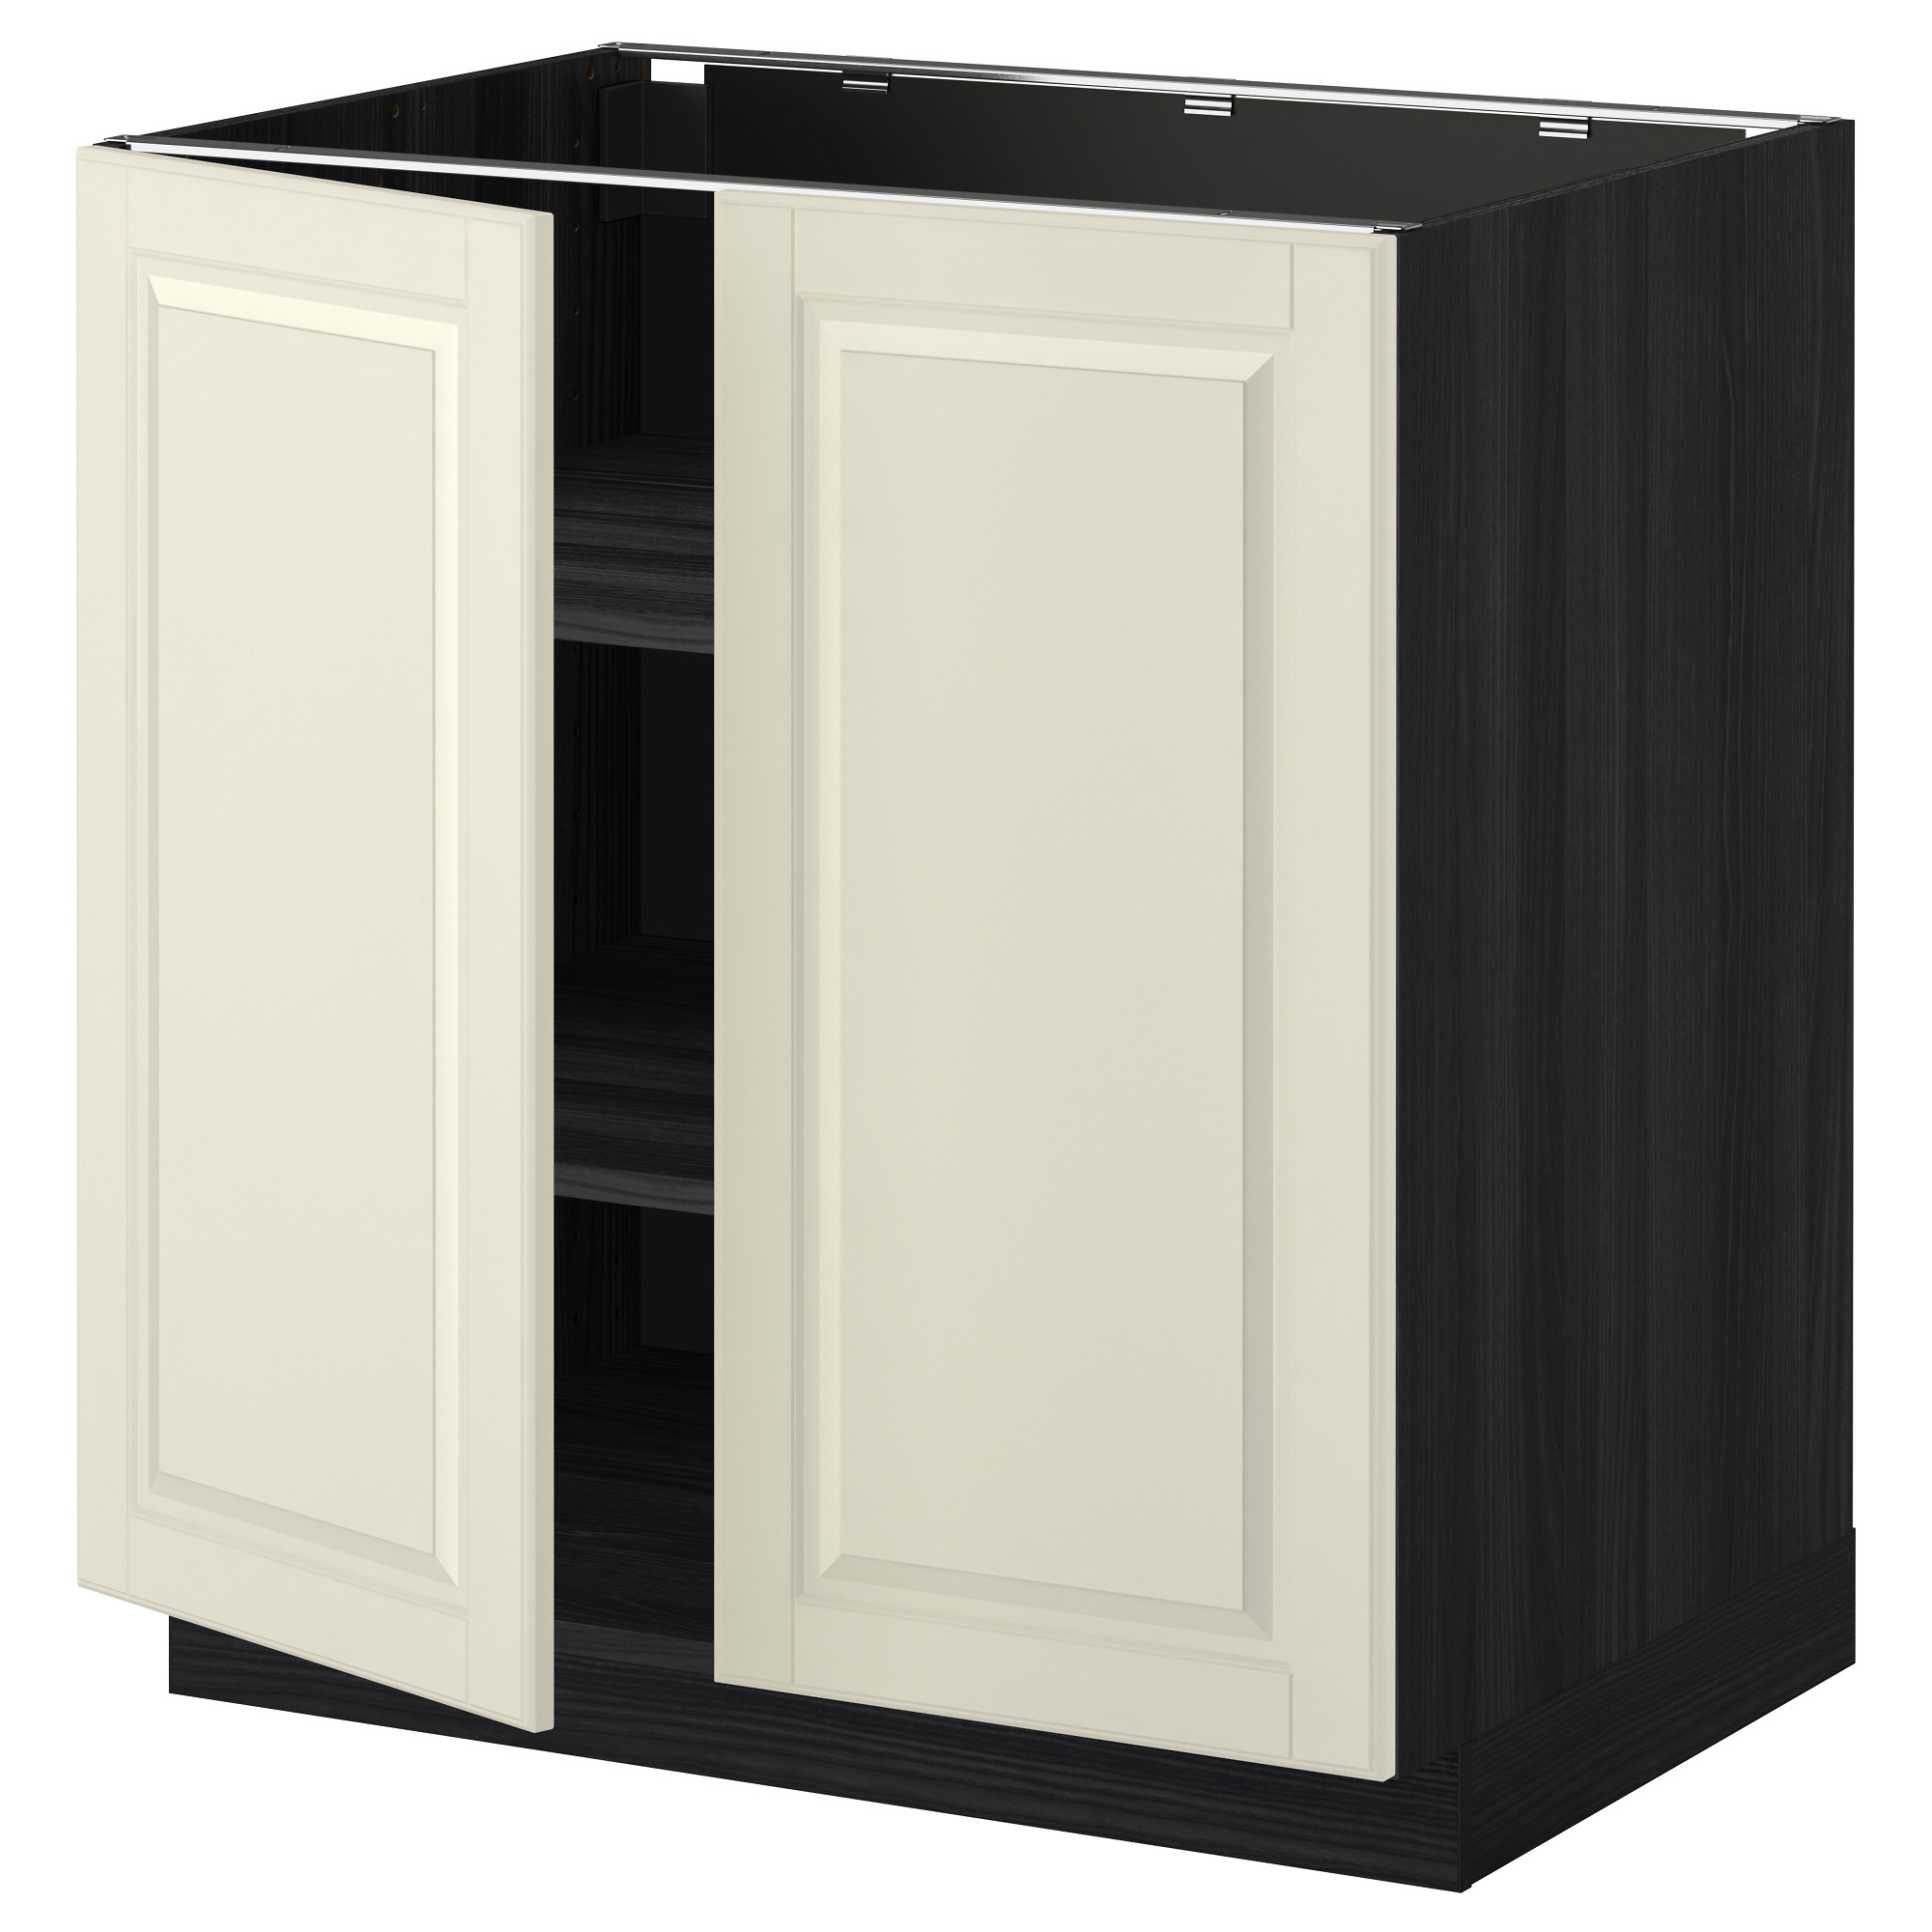 Innovativ METOD Base cabinet with shelves/2 doors - wood effect black  ML21